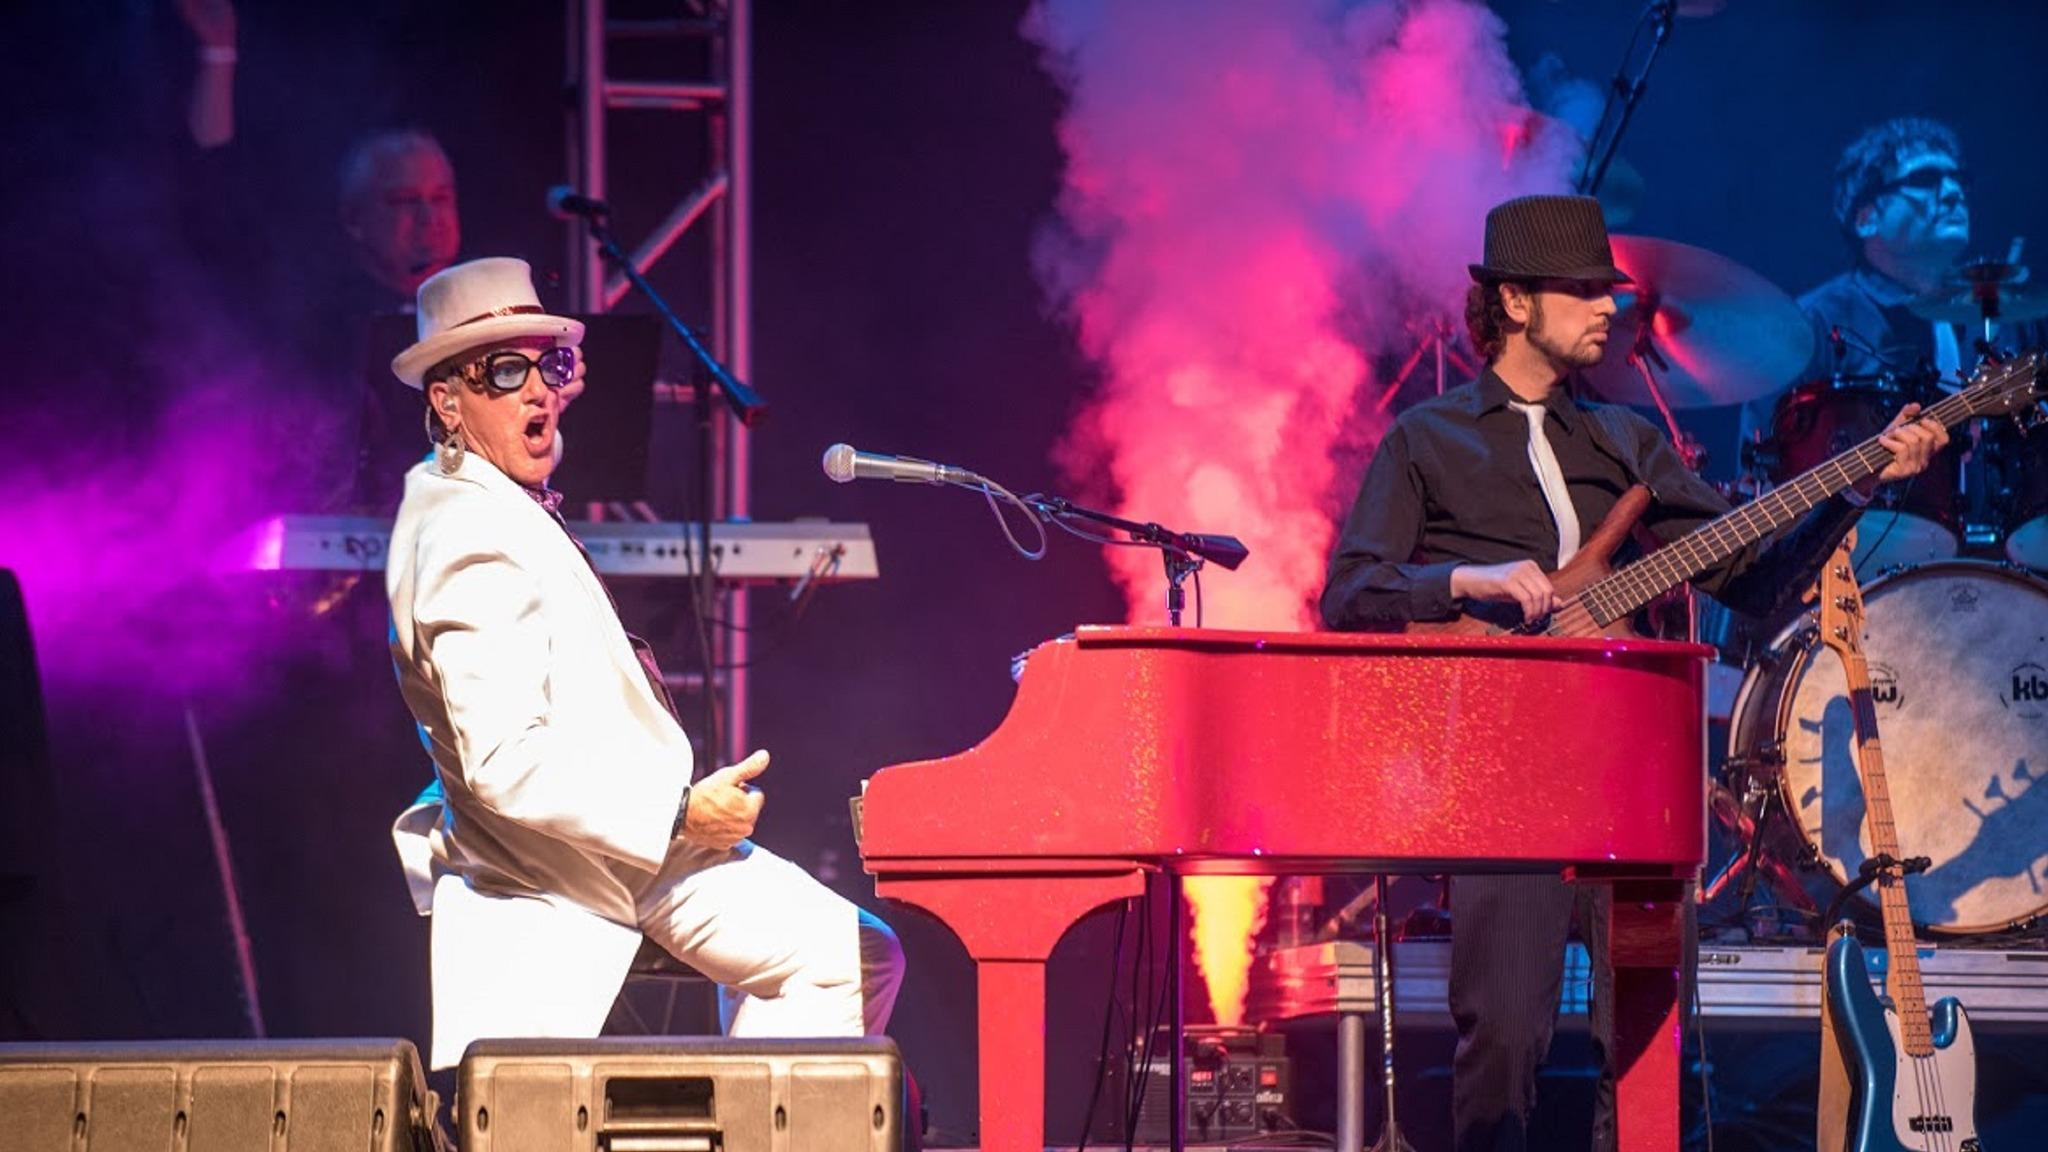 94.9 KCMO Presents: Elton Dan and The Rocket Band